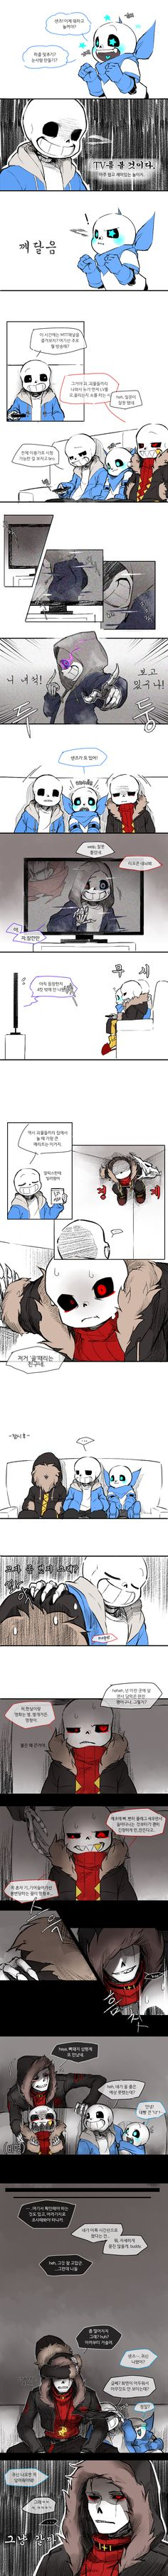 Don't know what the heck it says. But those drawings though OAO! Papyrus Undertale, Sans Papyrus, Undertale Love, Undertale Fanart, Verona, Sans Puns, Undertale Comic Funny, Underswap, Pokemon